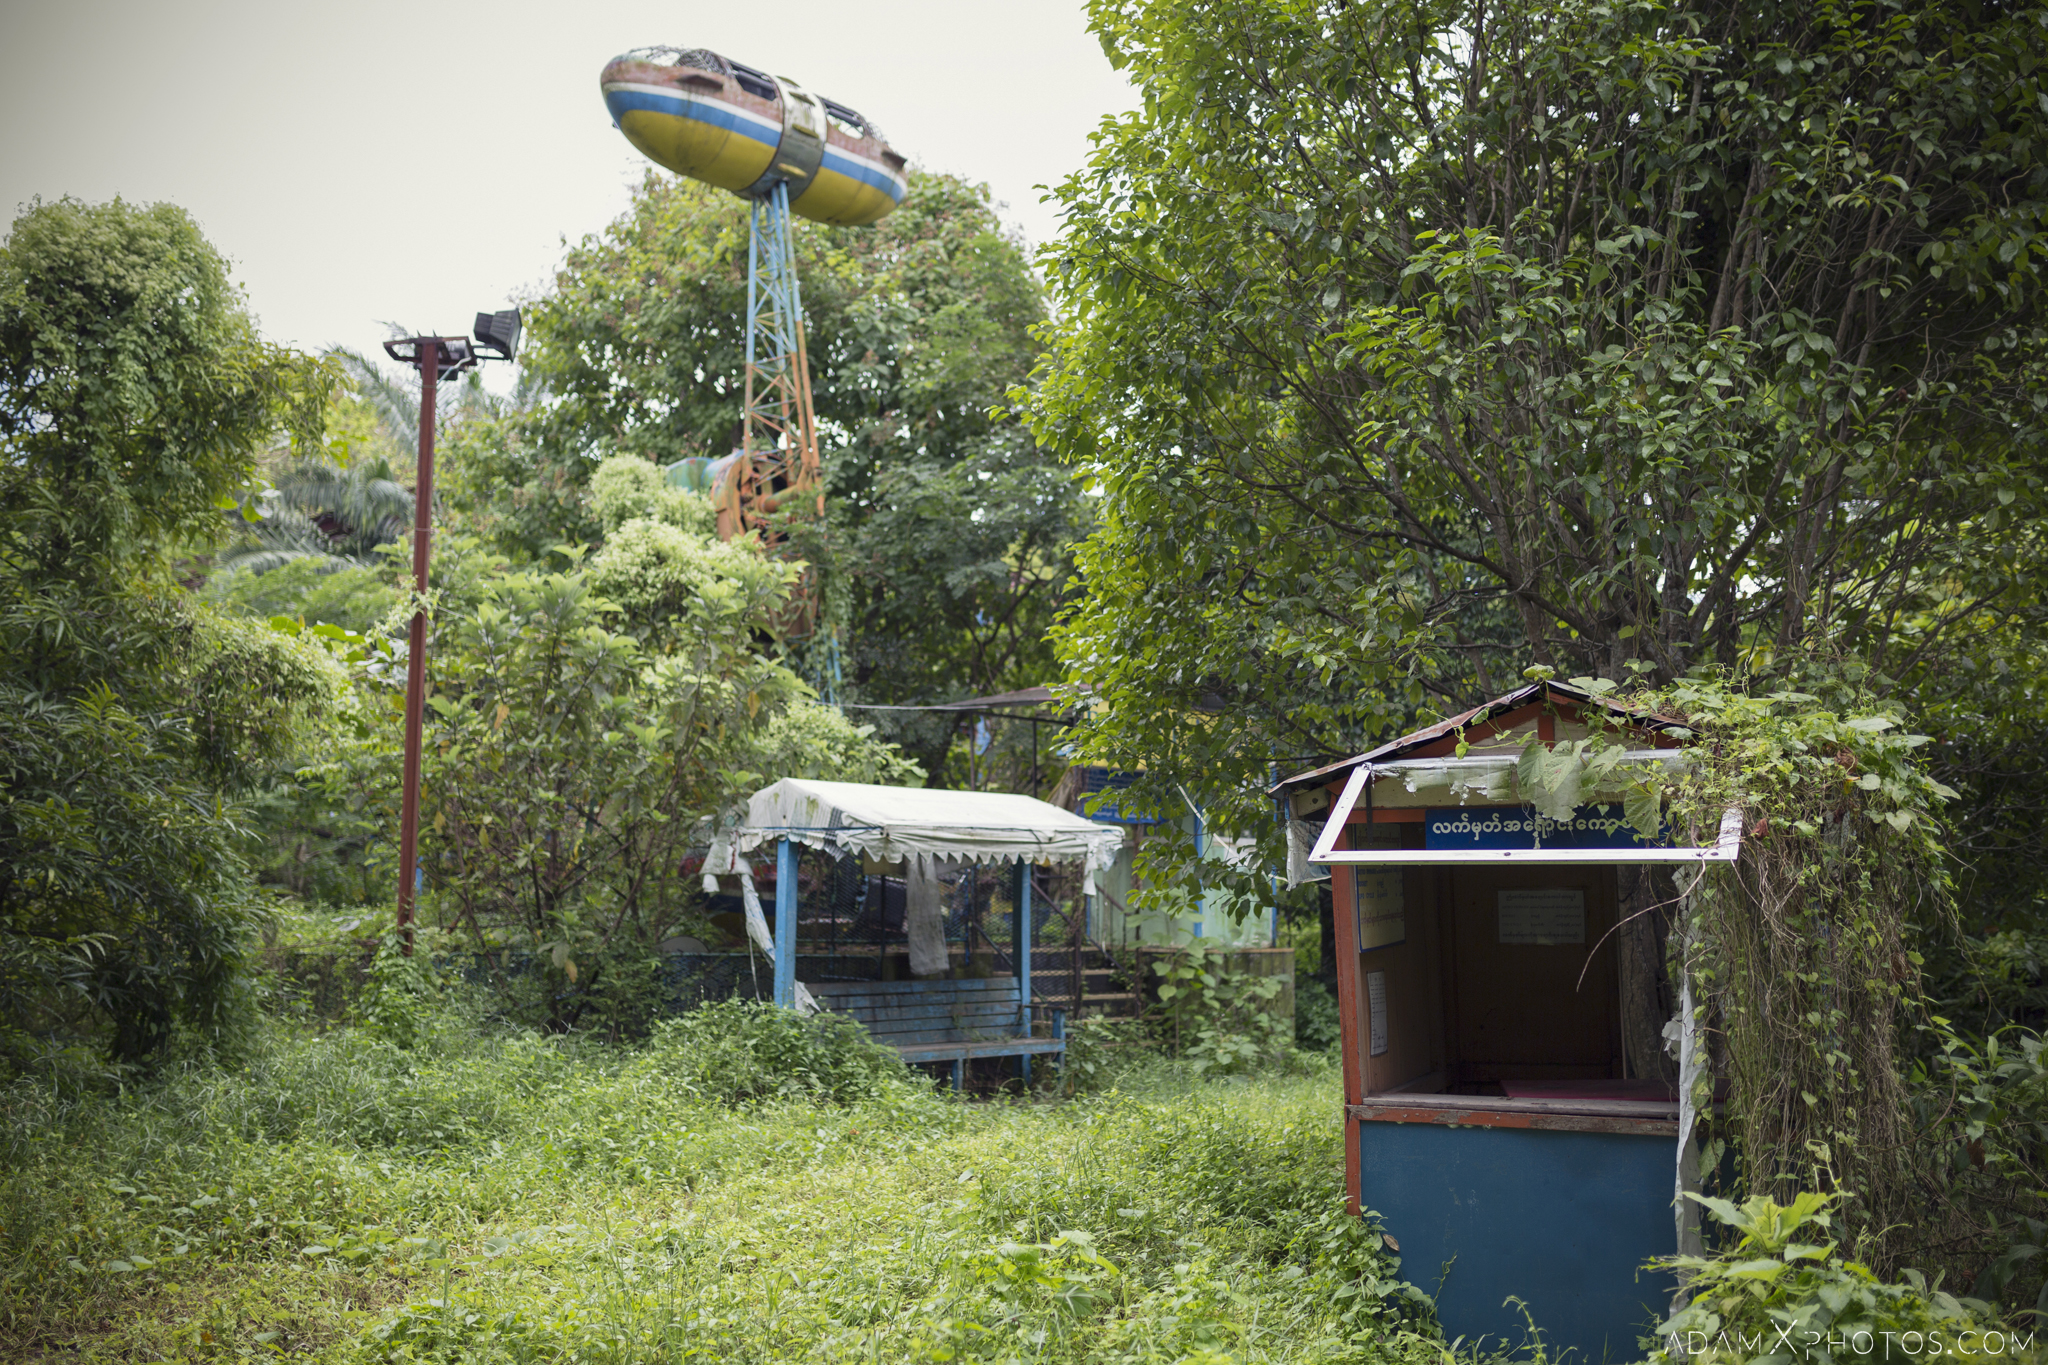 Rocket ride Happy World Theme Park Amusement Park Fairground Myanmar Burma Yangon Rangoon Urbex Adam X Urban Exploration Access 2016 Abandoned decay lost forgotten derelict location creepy haunting eerie